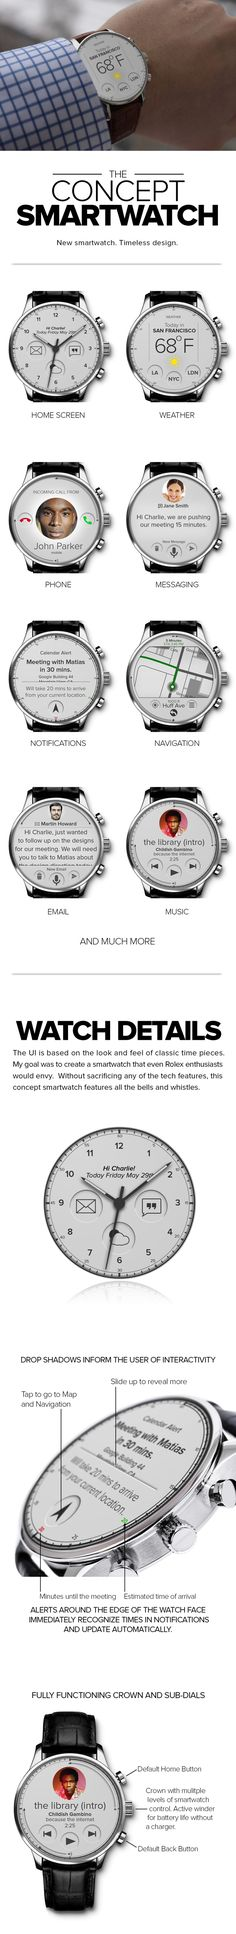 CONCEPT SMARTWATCH by Charlie No